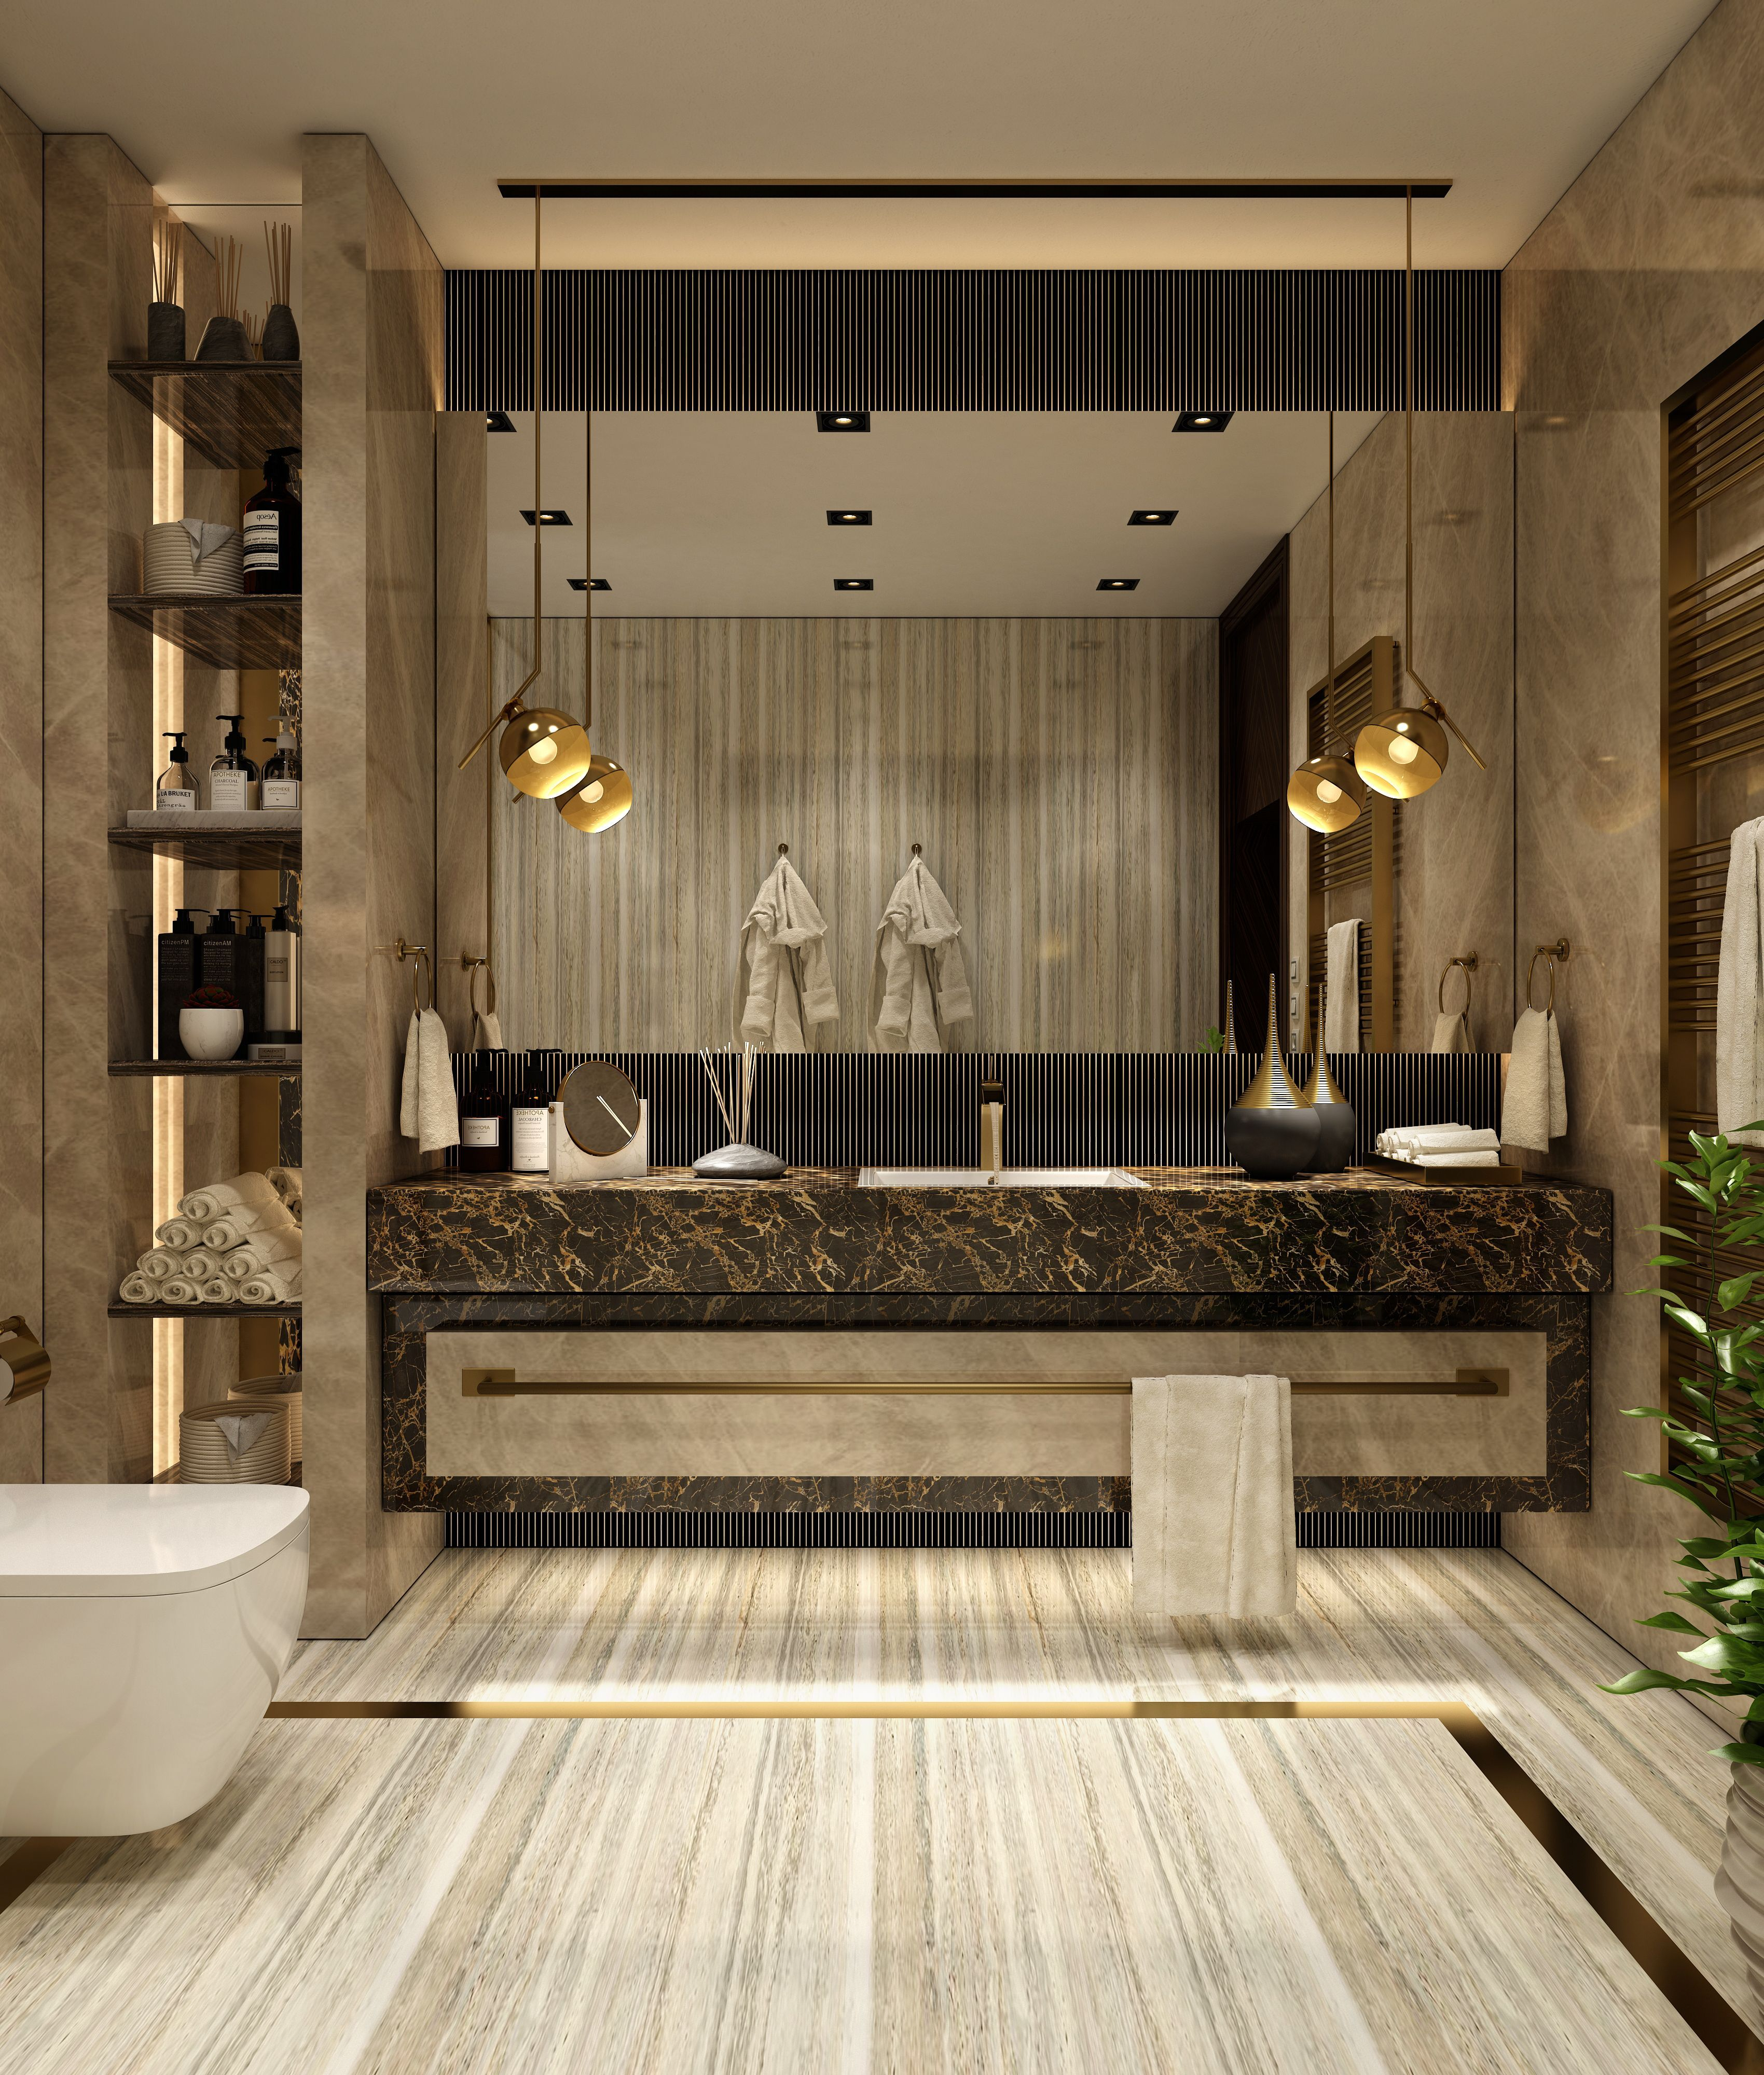 Luxury Bathroom Master Baths Photo Galleries Is Certainly Important For Your H Contemporary Bathroom Designs Bathroom Design Luxury Bathroom Inspiration Modern